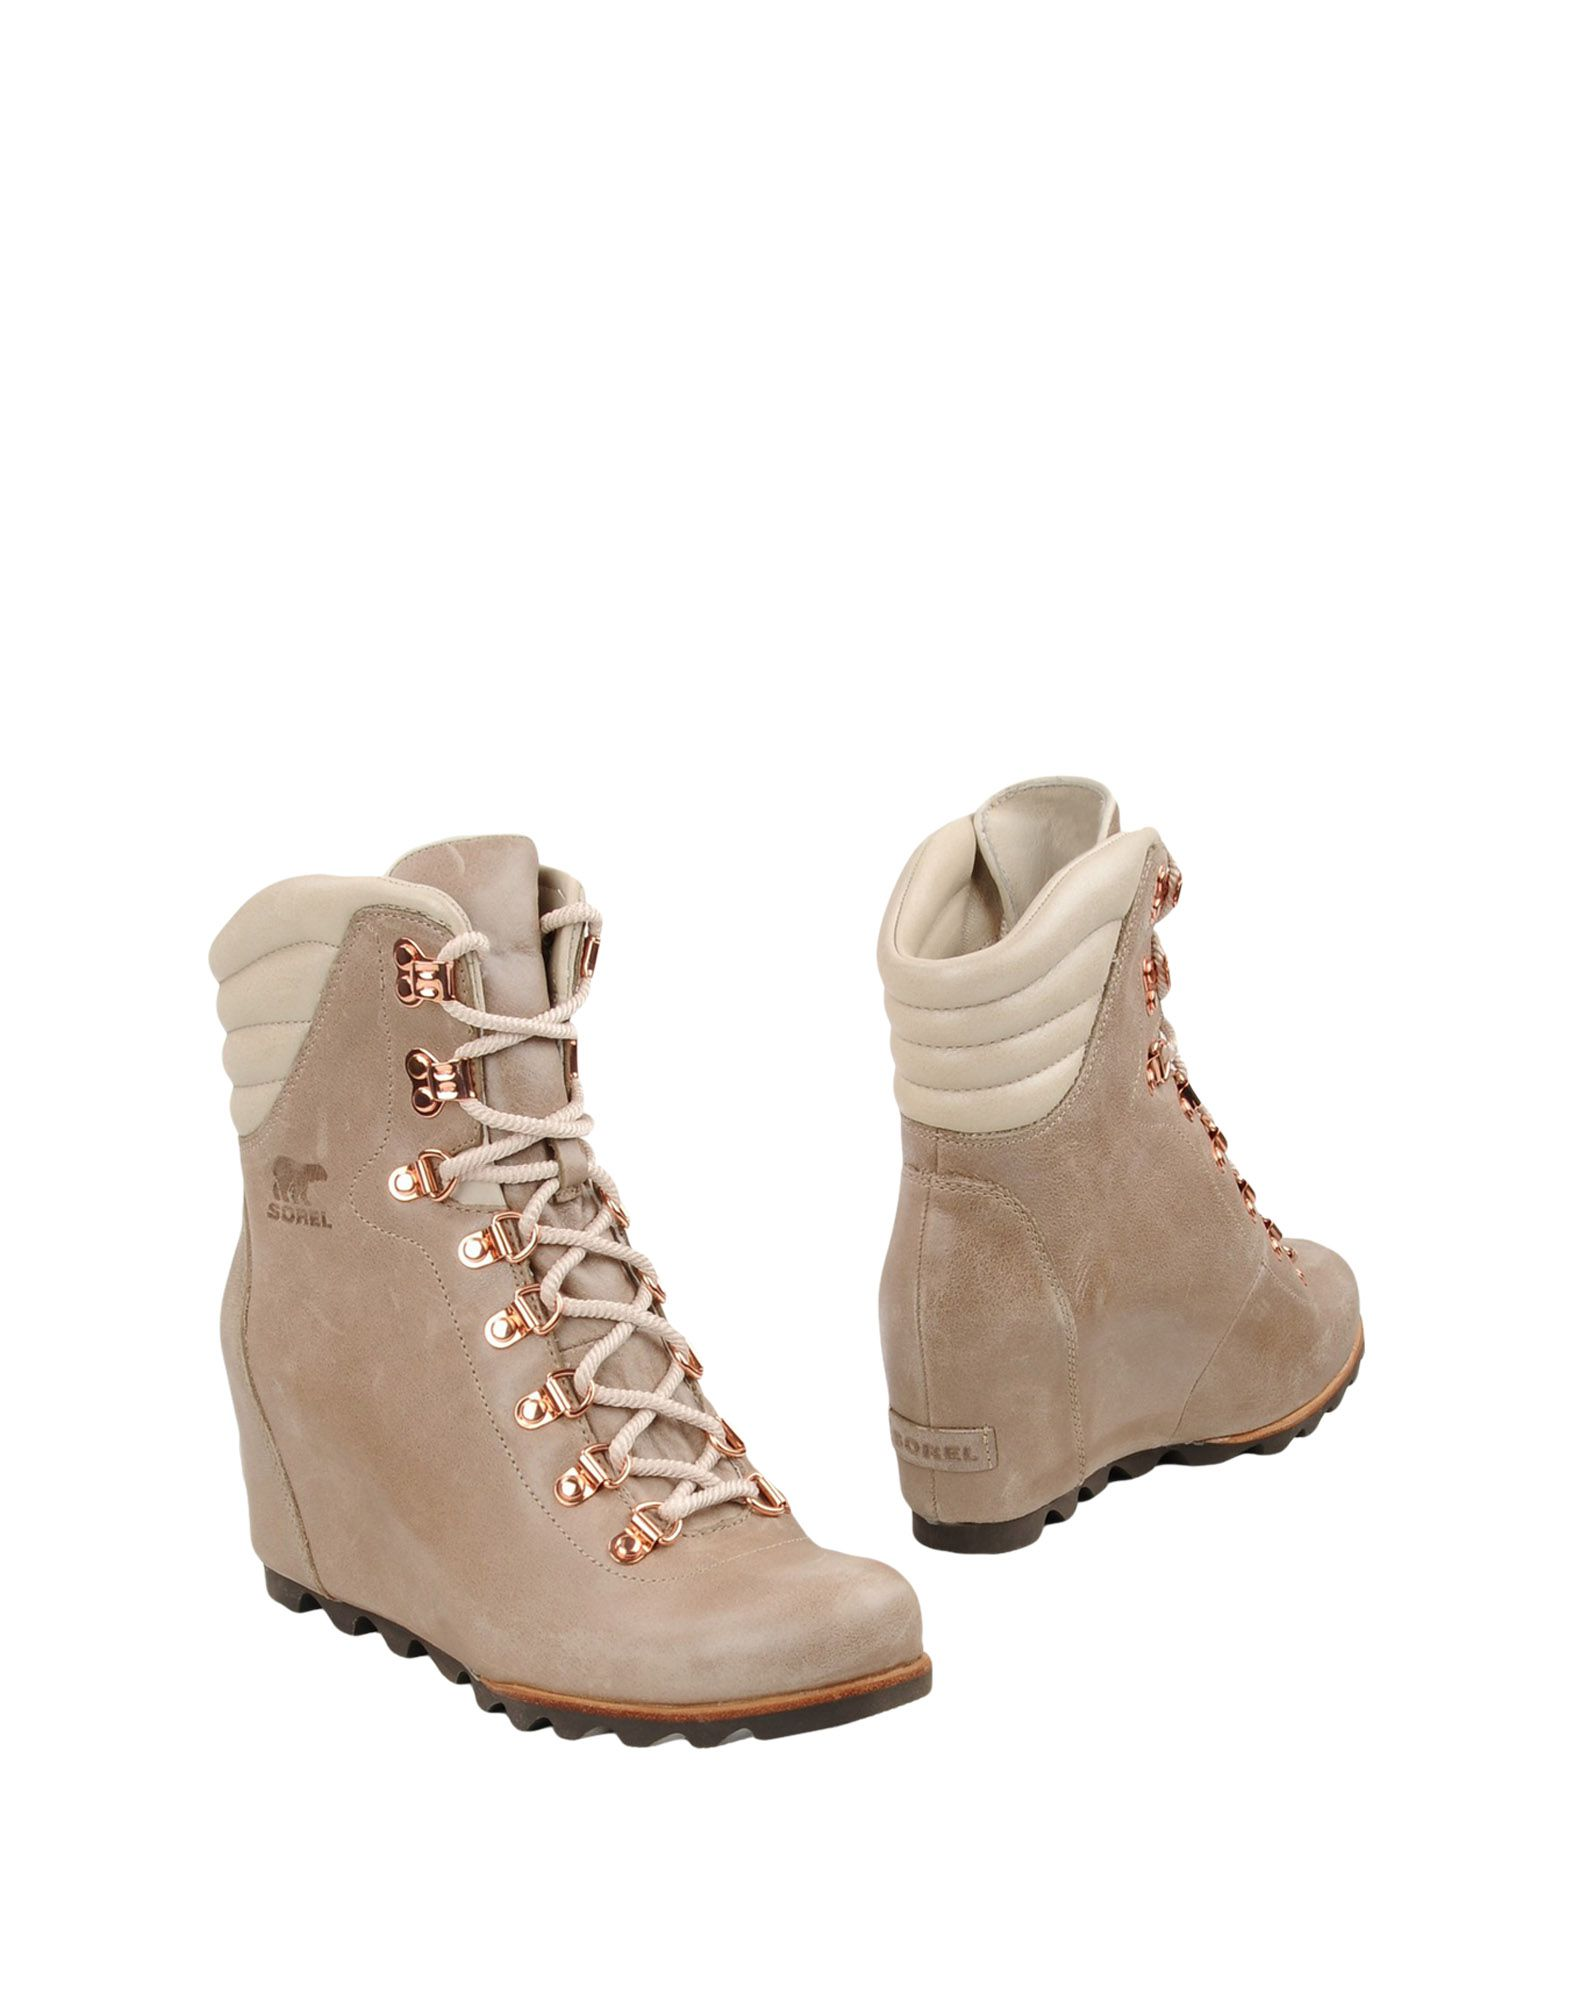 Columbia Conquest Boot Wedge Holiday - Ankle Boot Conquest - Women Columbia Ankle Boots online on  Australia - 11397473VA 010a11